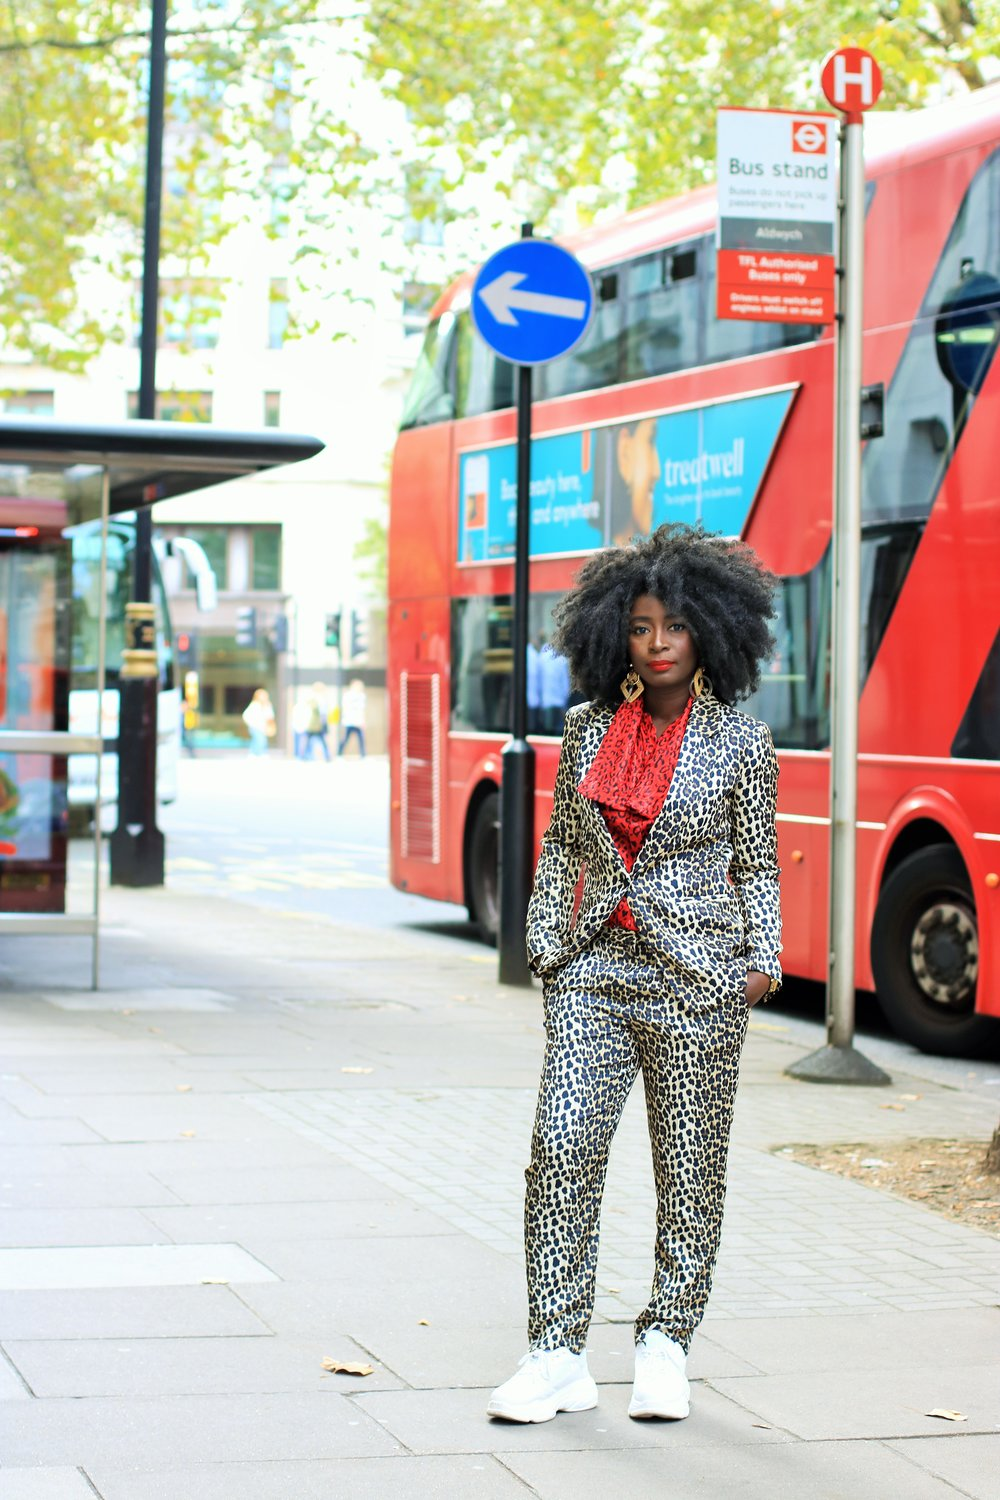 London_Fashion_Week_Animal_Prints